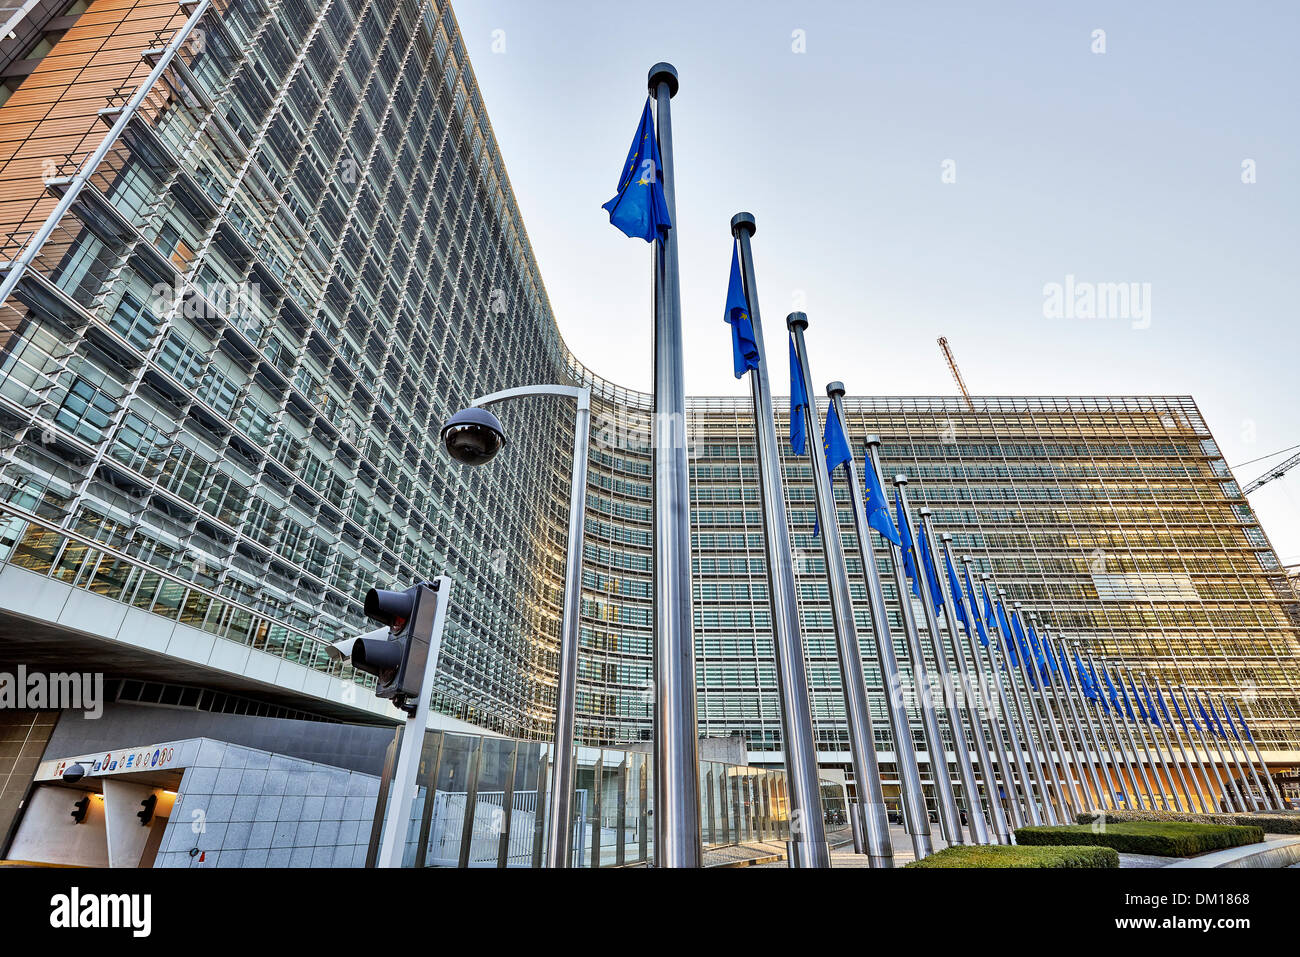 The Berlaymont building an flags - Stock Image